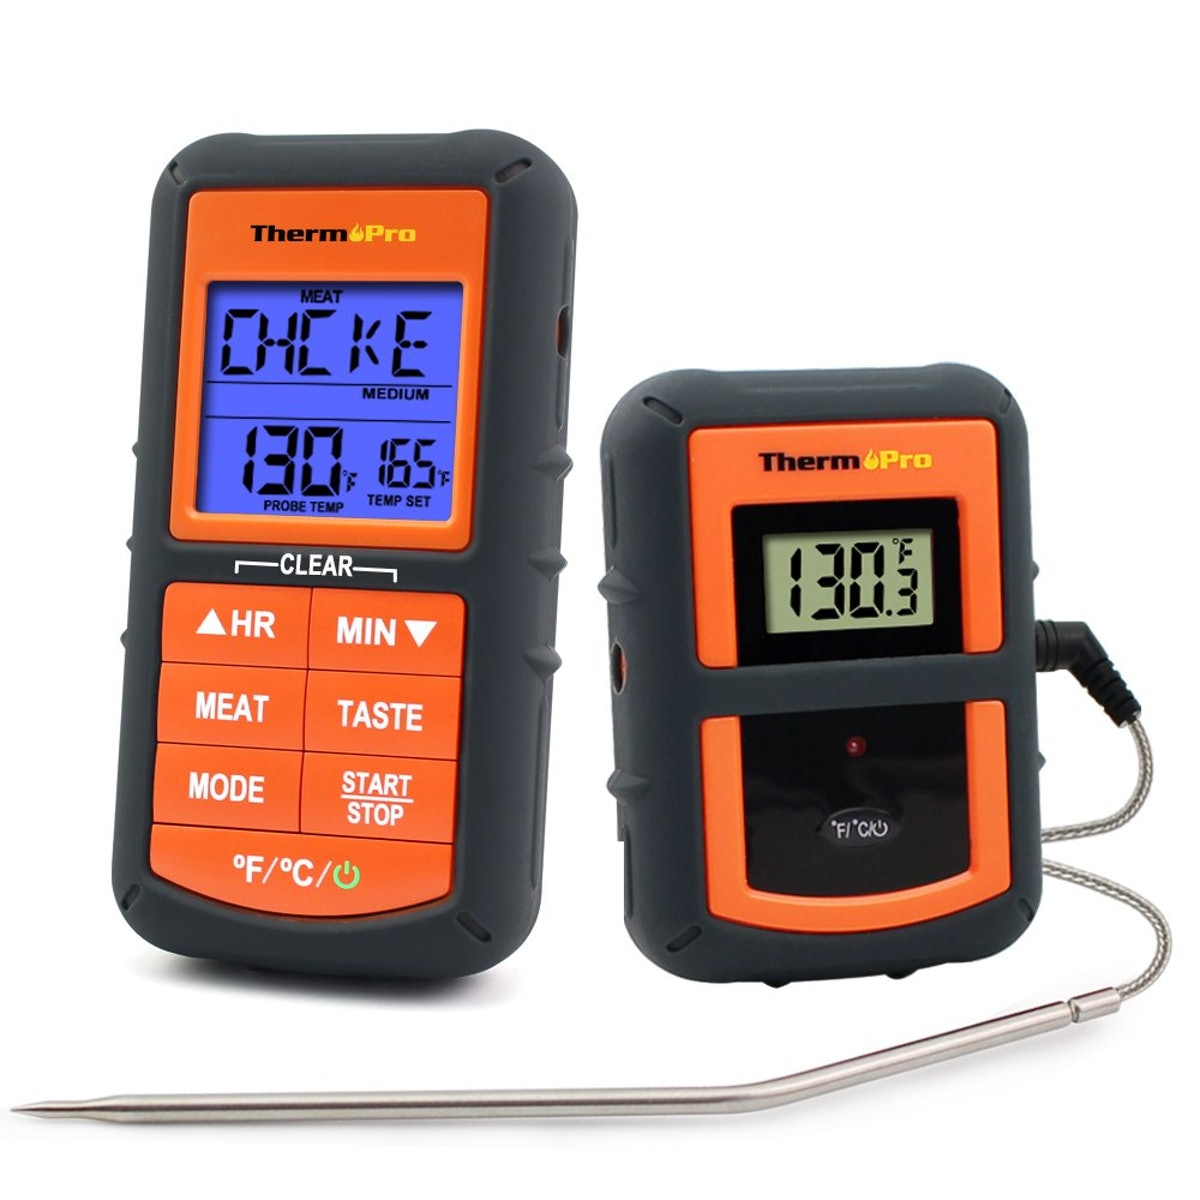 ThermoPro TP-07 Wireless Remote Digital Meat Thermometer